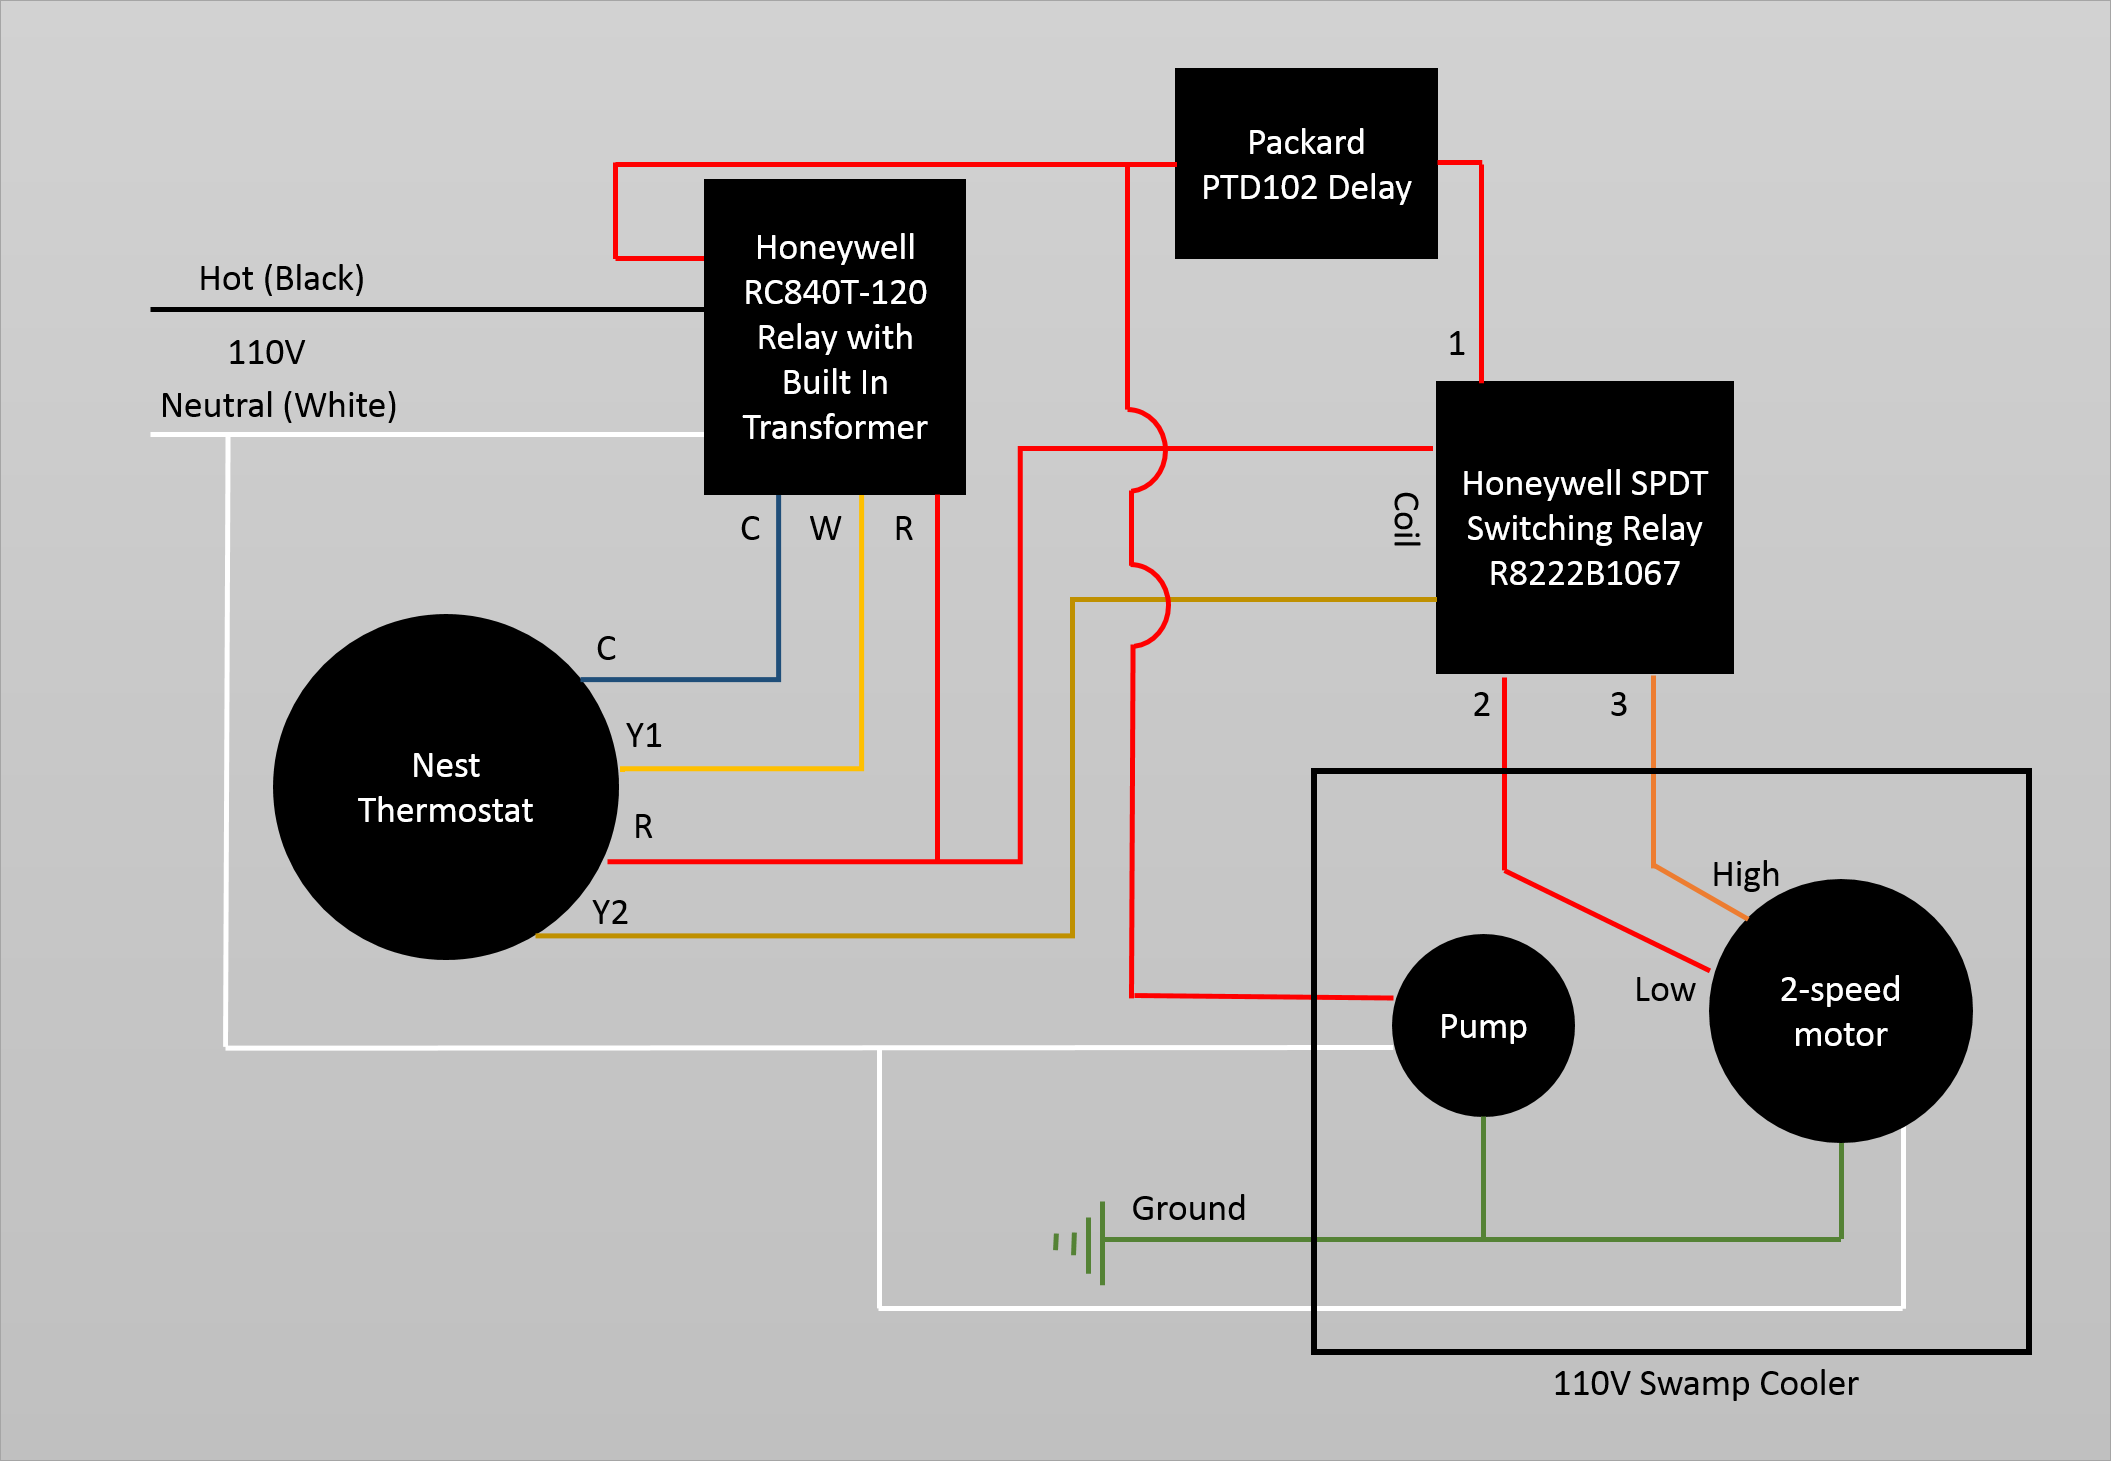 Terrific Wiring Controlling 110V Swamp Cooler Using Nest Thermostat Home Wiring Cloud Domeilariaidewilluminateatxorg